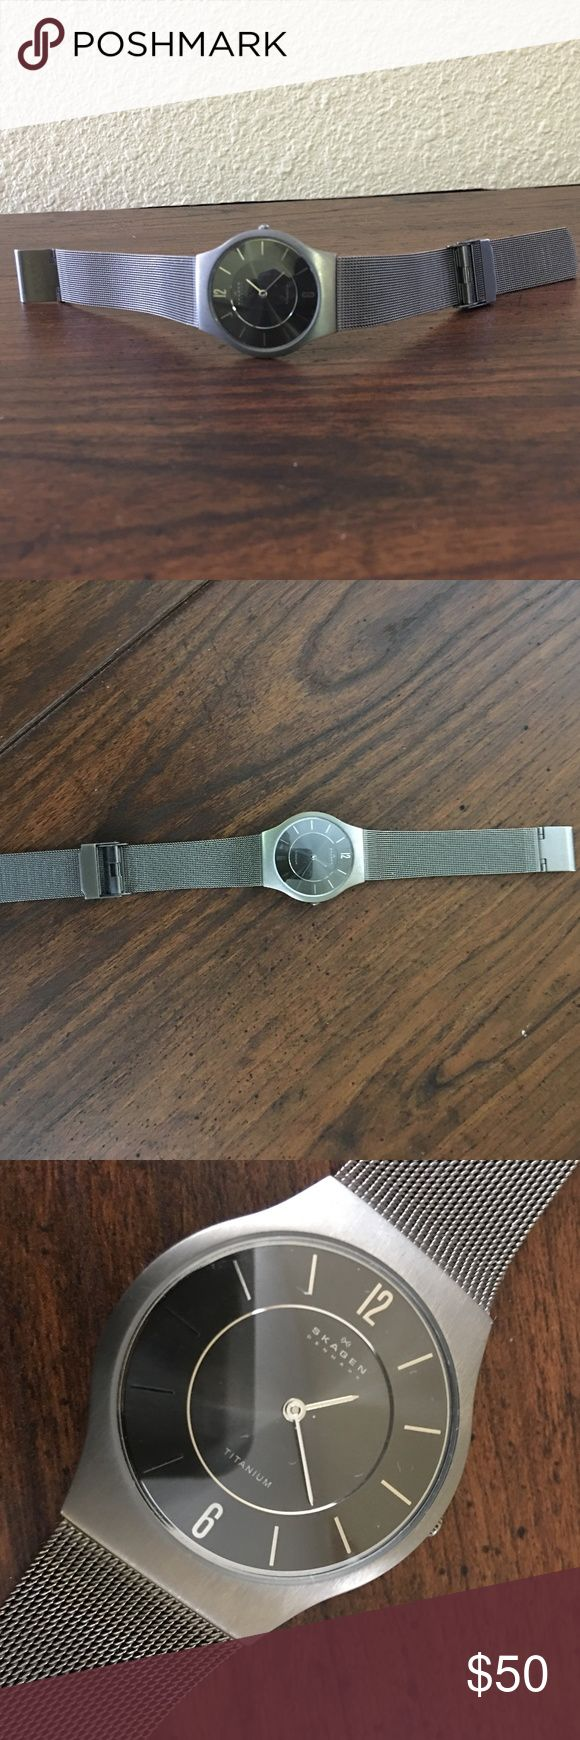 Skagen Titanium Men's Watch Pre-owned: This item is in good condition. This watch runs and all parts function perfectly.  Please feel free to make an offer and ask questions if any. All questions will be attempted and correctly answered. Thank you Skagen Accessories Watches